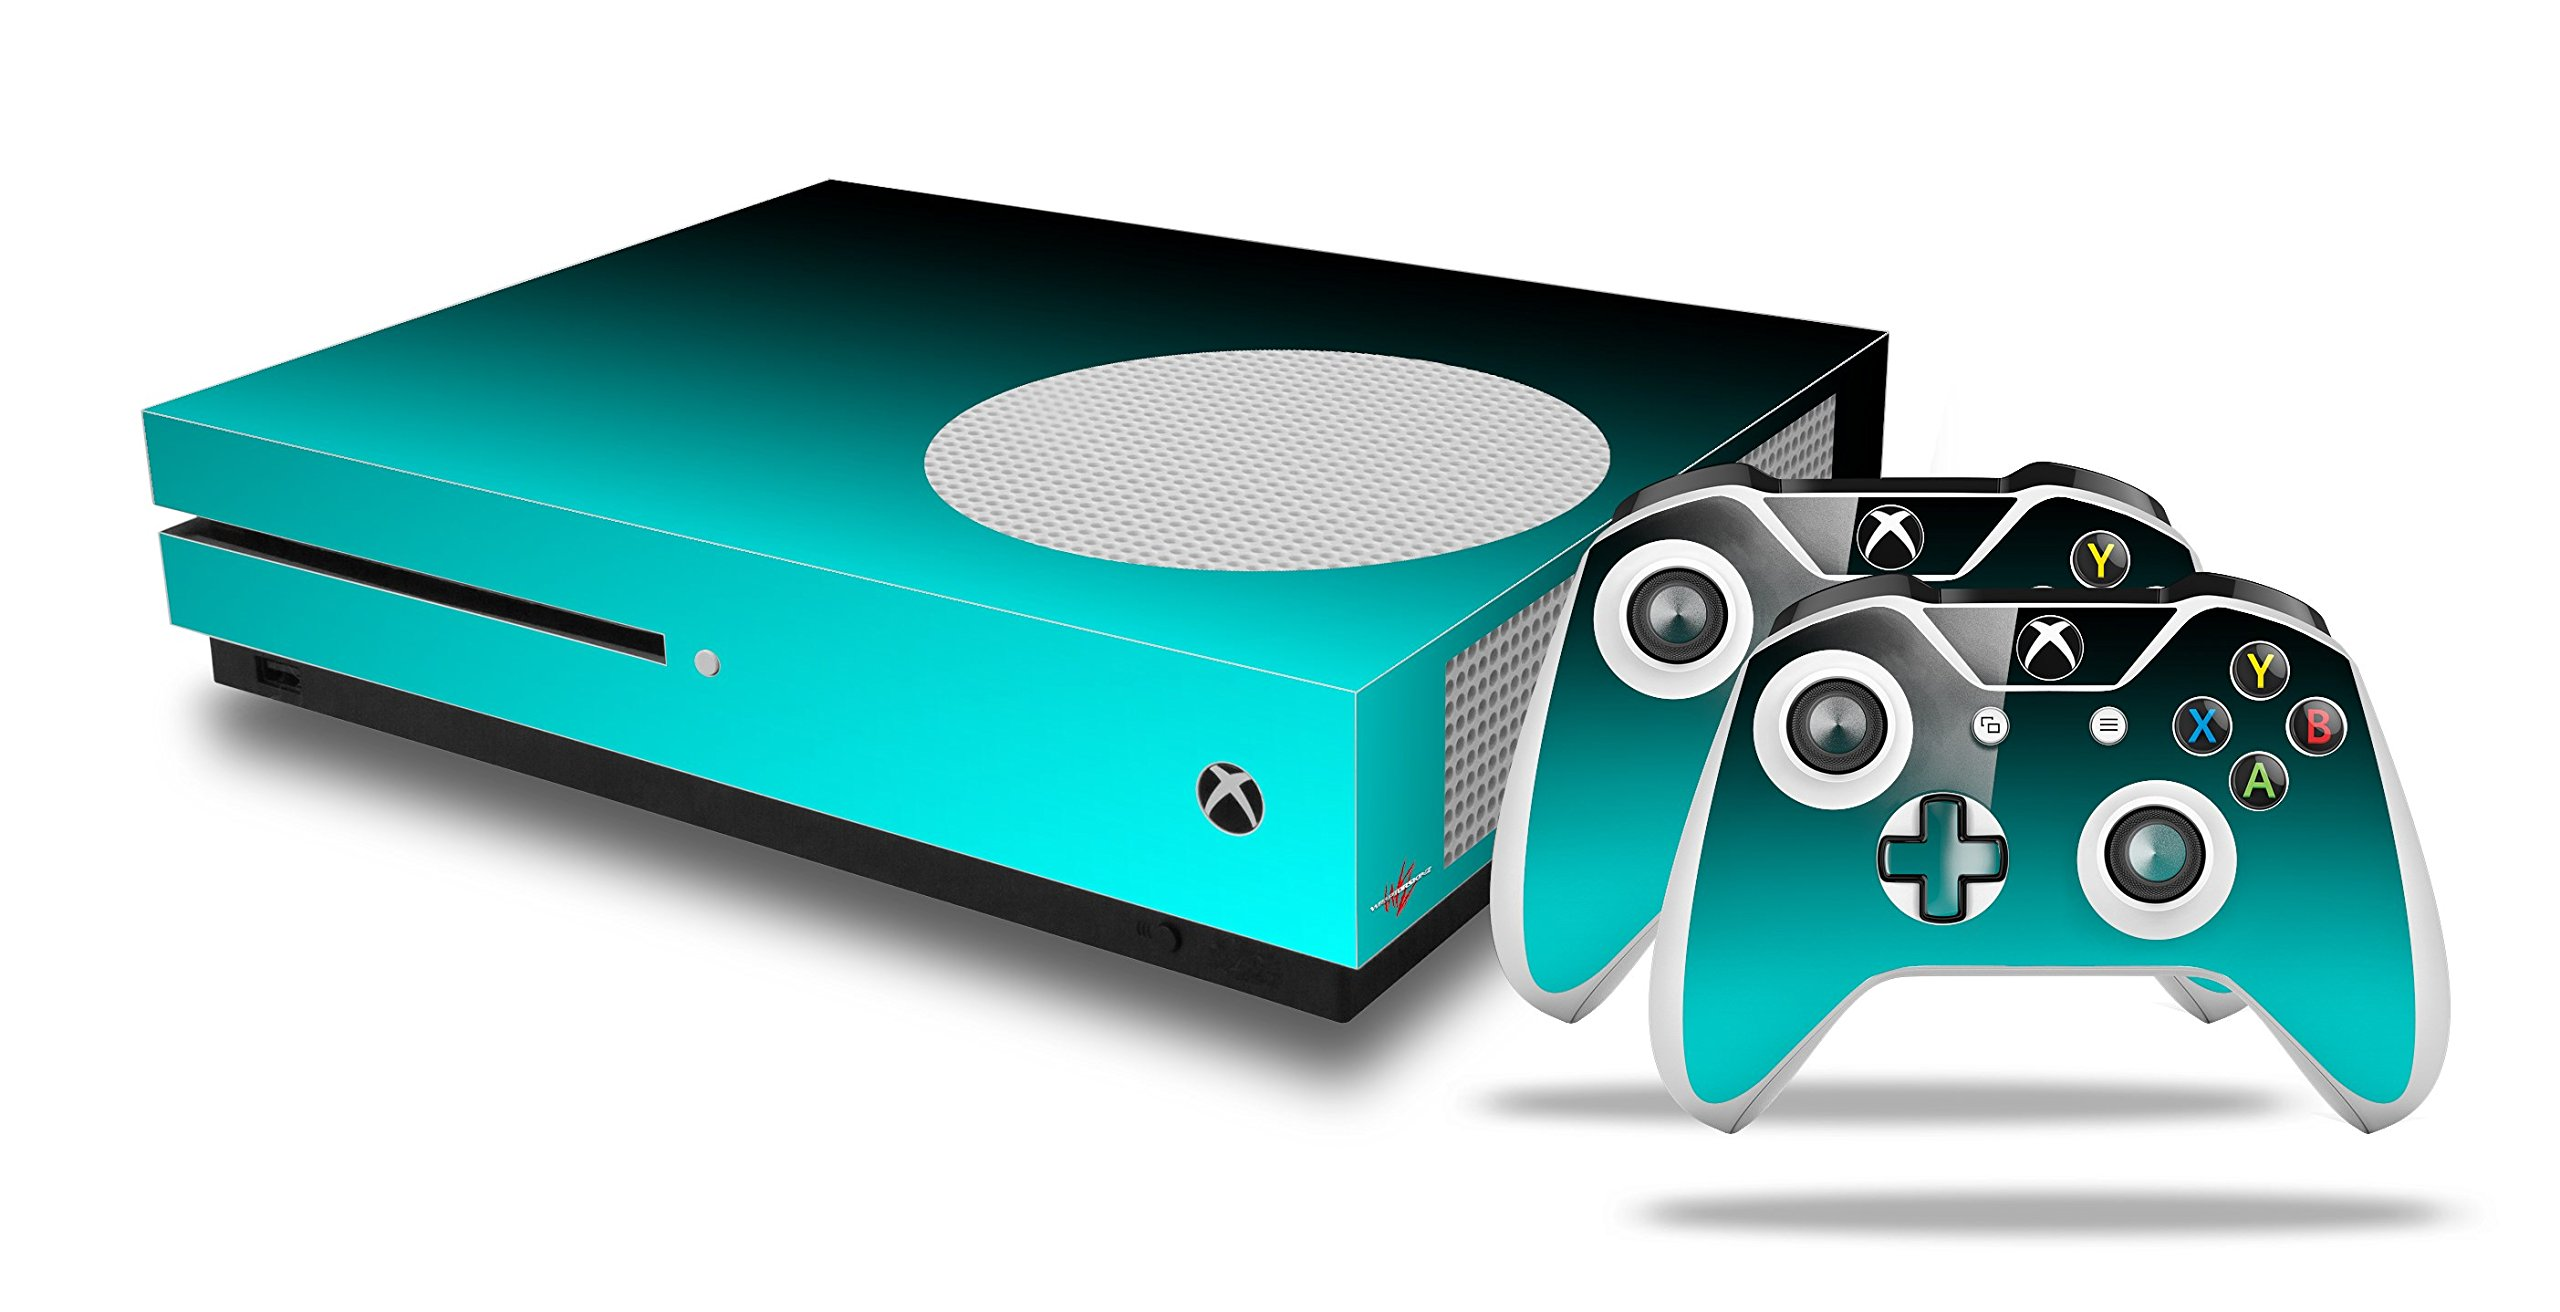 Smooth Fades Neon Teal Black - Decal Style Skin Set fits XBOX One S Console and 2 Controllers (XBOX SYSTEM SOLD SEPARATELY)